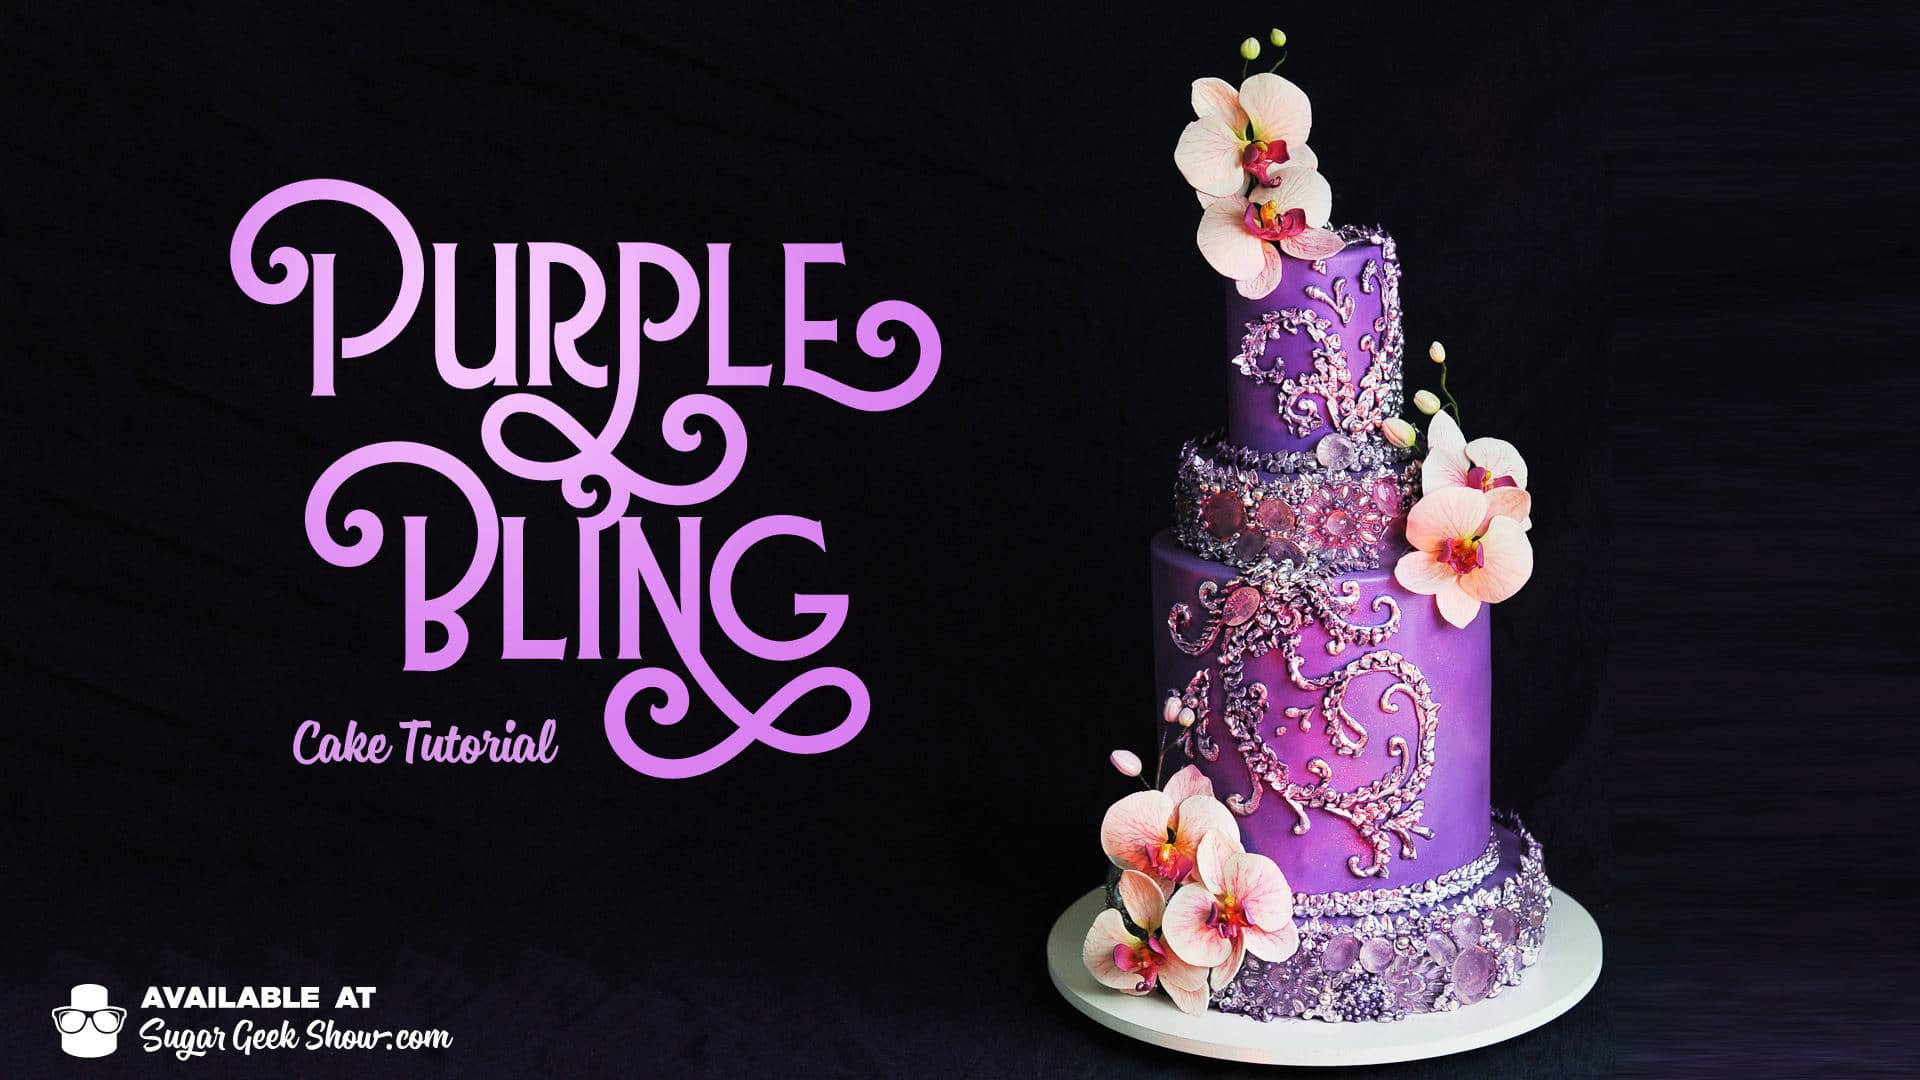 This is a re-make of one of my very early cakes in my career. Since then, it has been pinned, shared and re-posted thousands of times. I have always had a thing for shiny edible bling on cakes and get many requests on how to re-create these edible jewels. So here it is! How to make the purple bling cake complete with edible jewels and silver piping and gorgeous, life-like gumpaste orchids! Click through to learn the step-by-step process on >>> sugargeekshow.com